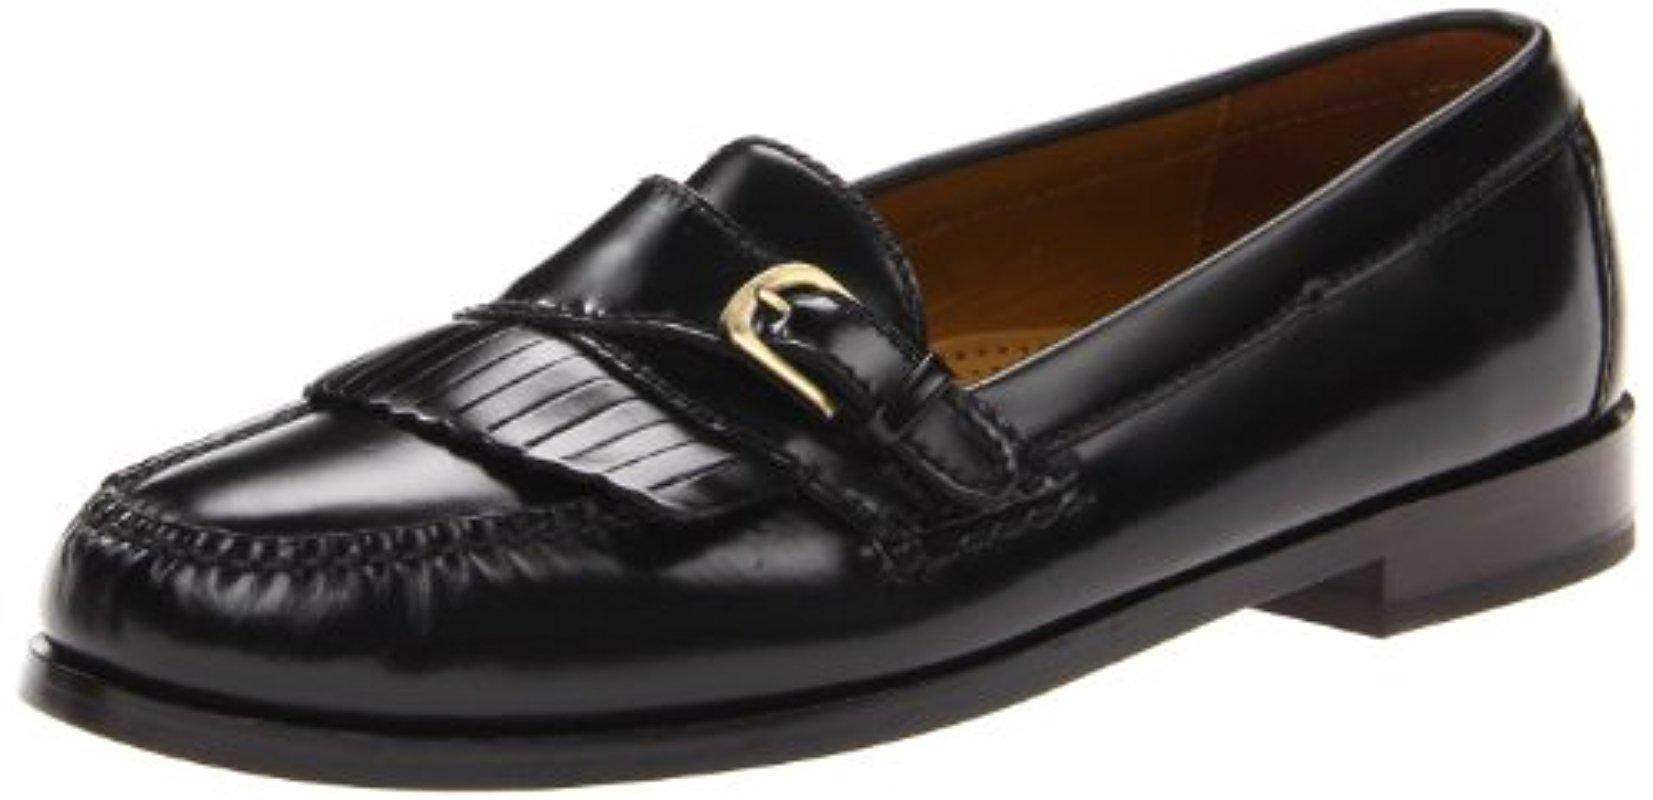 ebcee276dbd Lyst - Cole Haan Pinch Buckle Slip-on Loafer in Black for Men